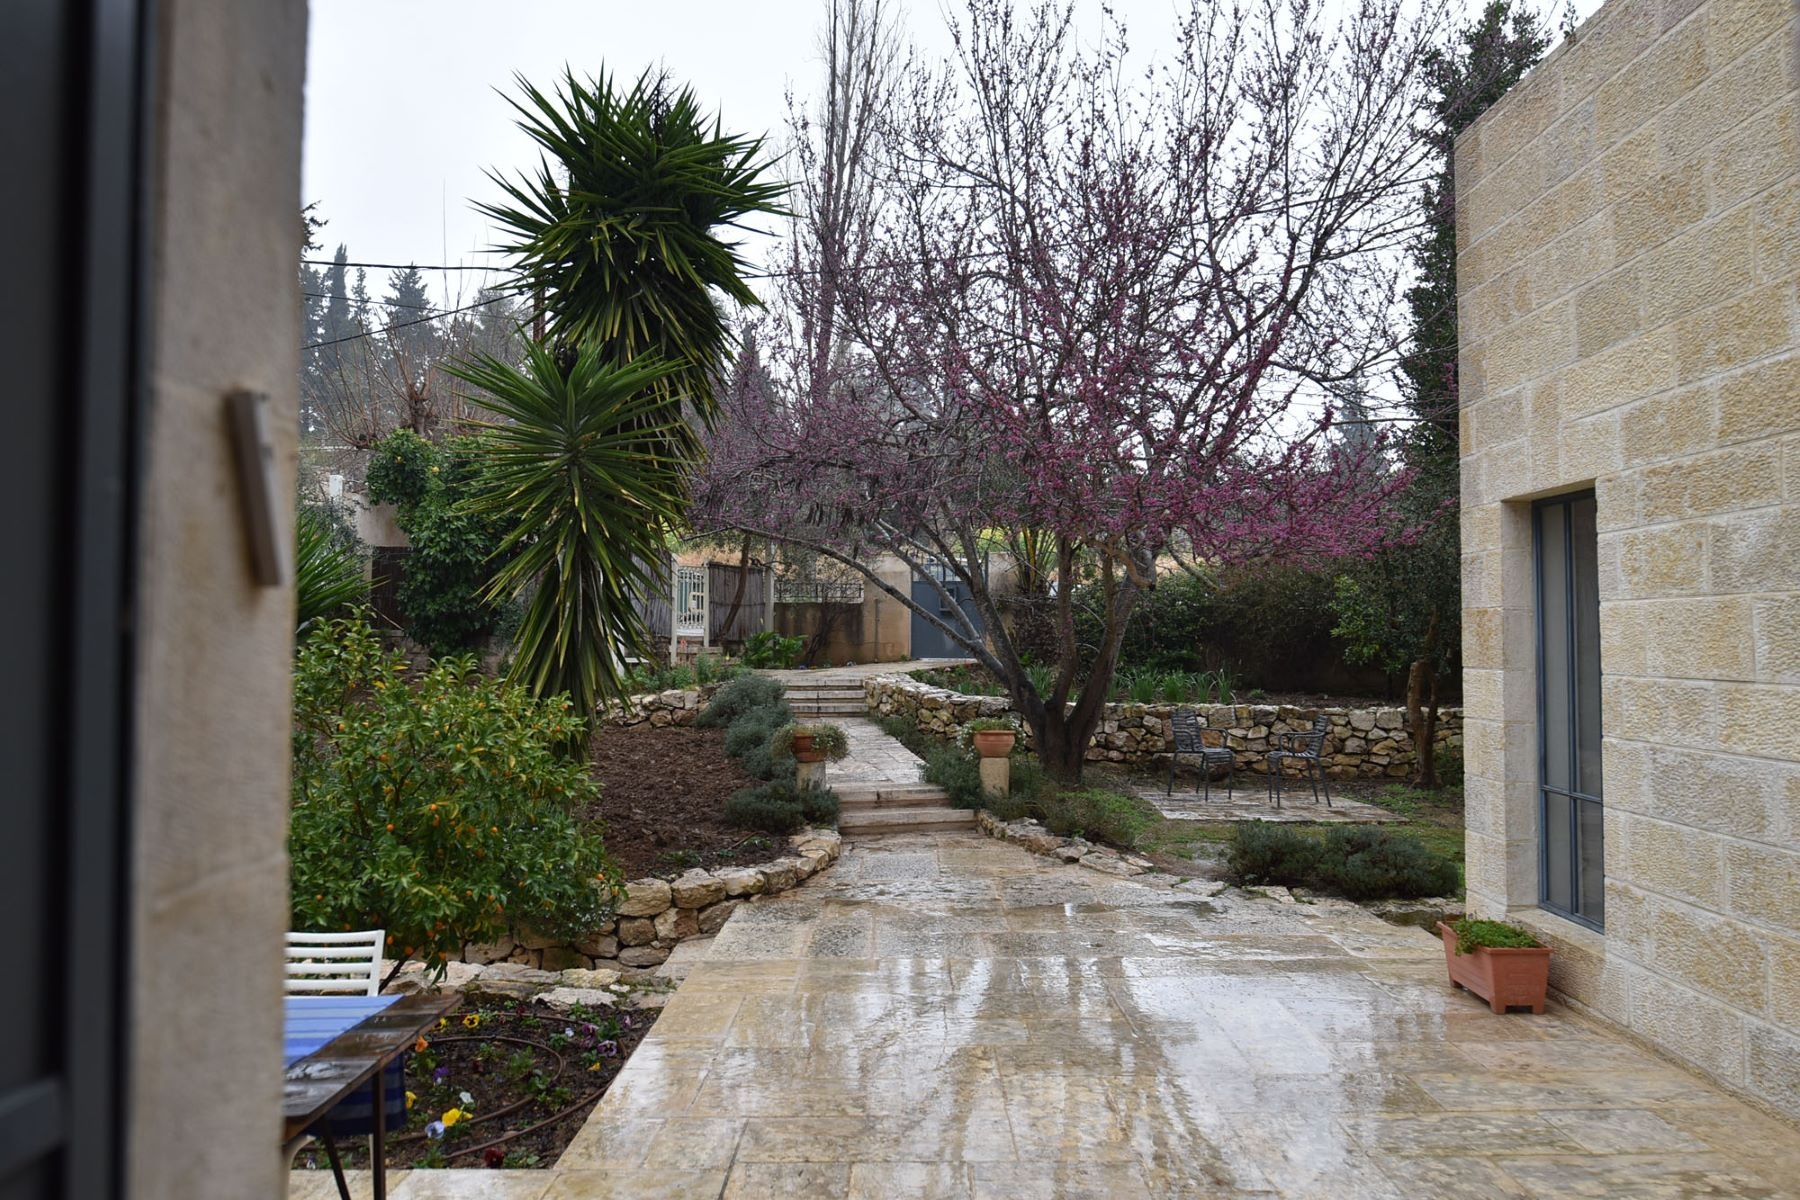 Additional photo for property listing at A Unique Home in Ein Karem 耶路撒冷, 以色列 以色列